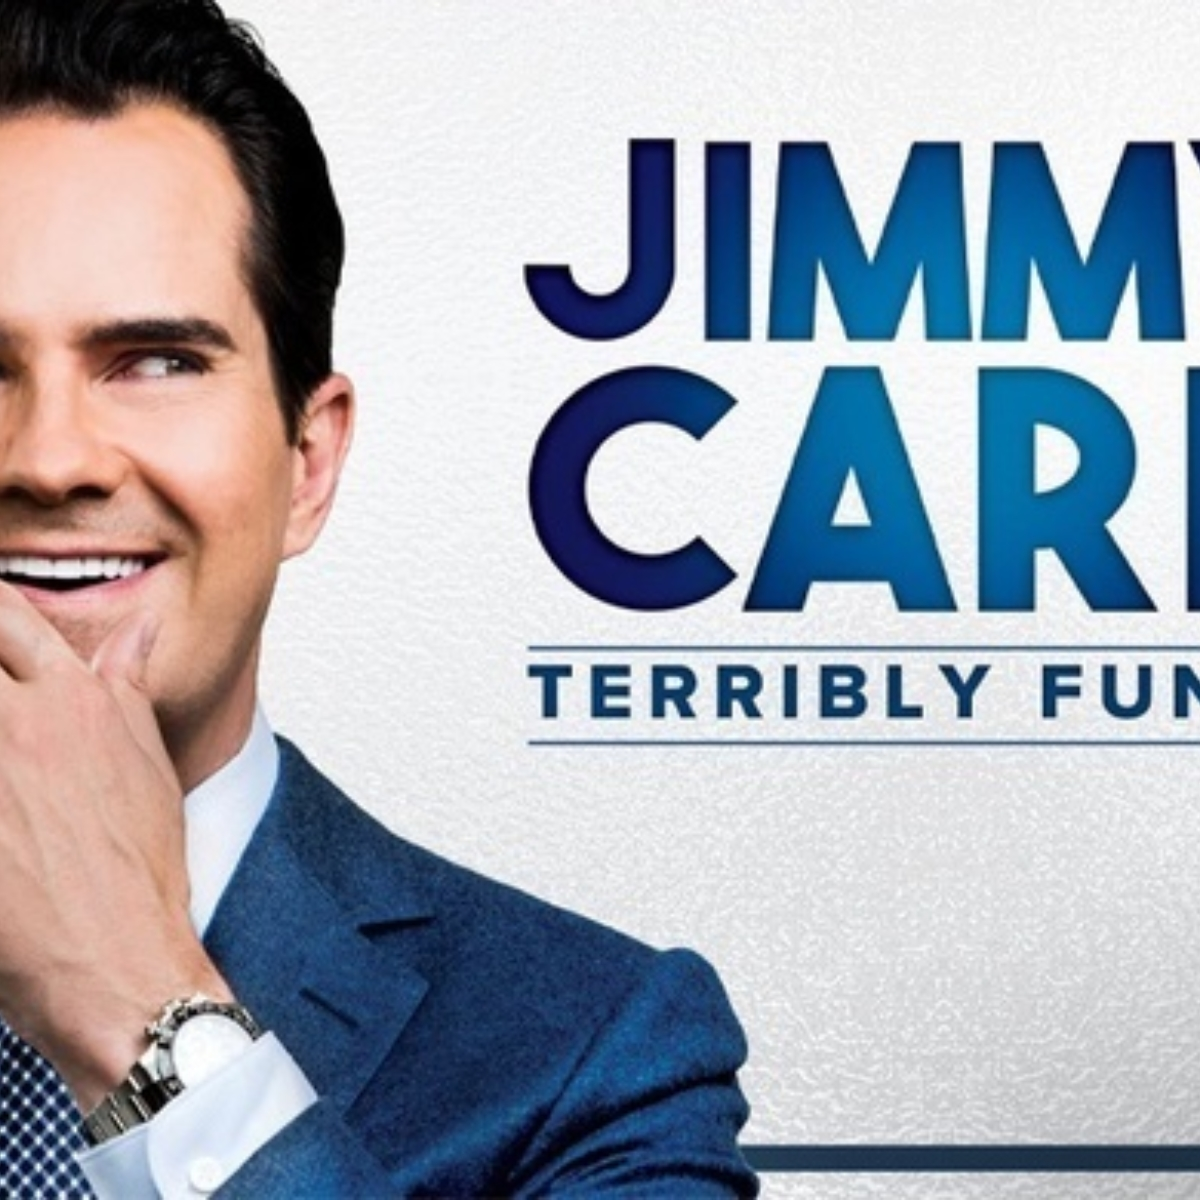 Jimmy Carr - Terribly Funny Images